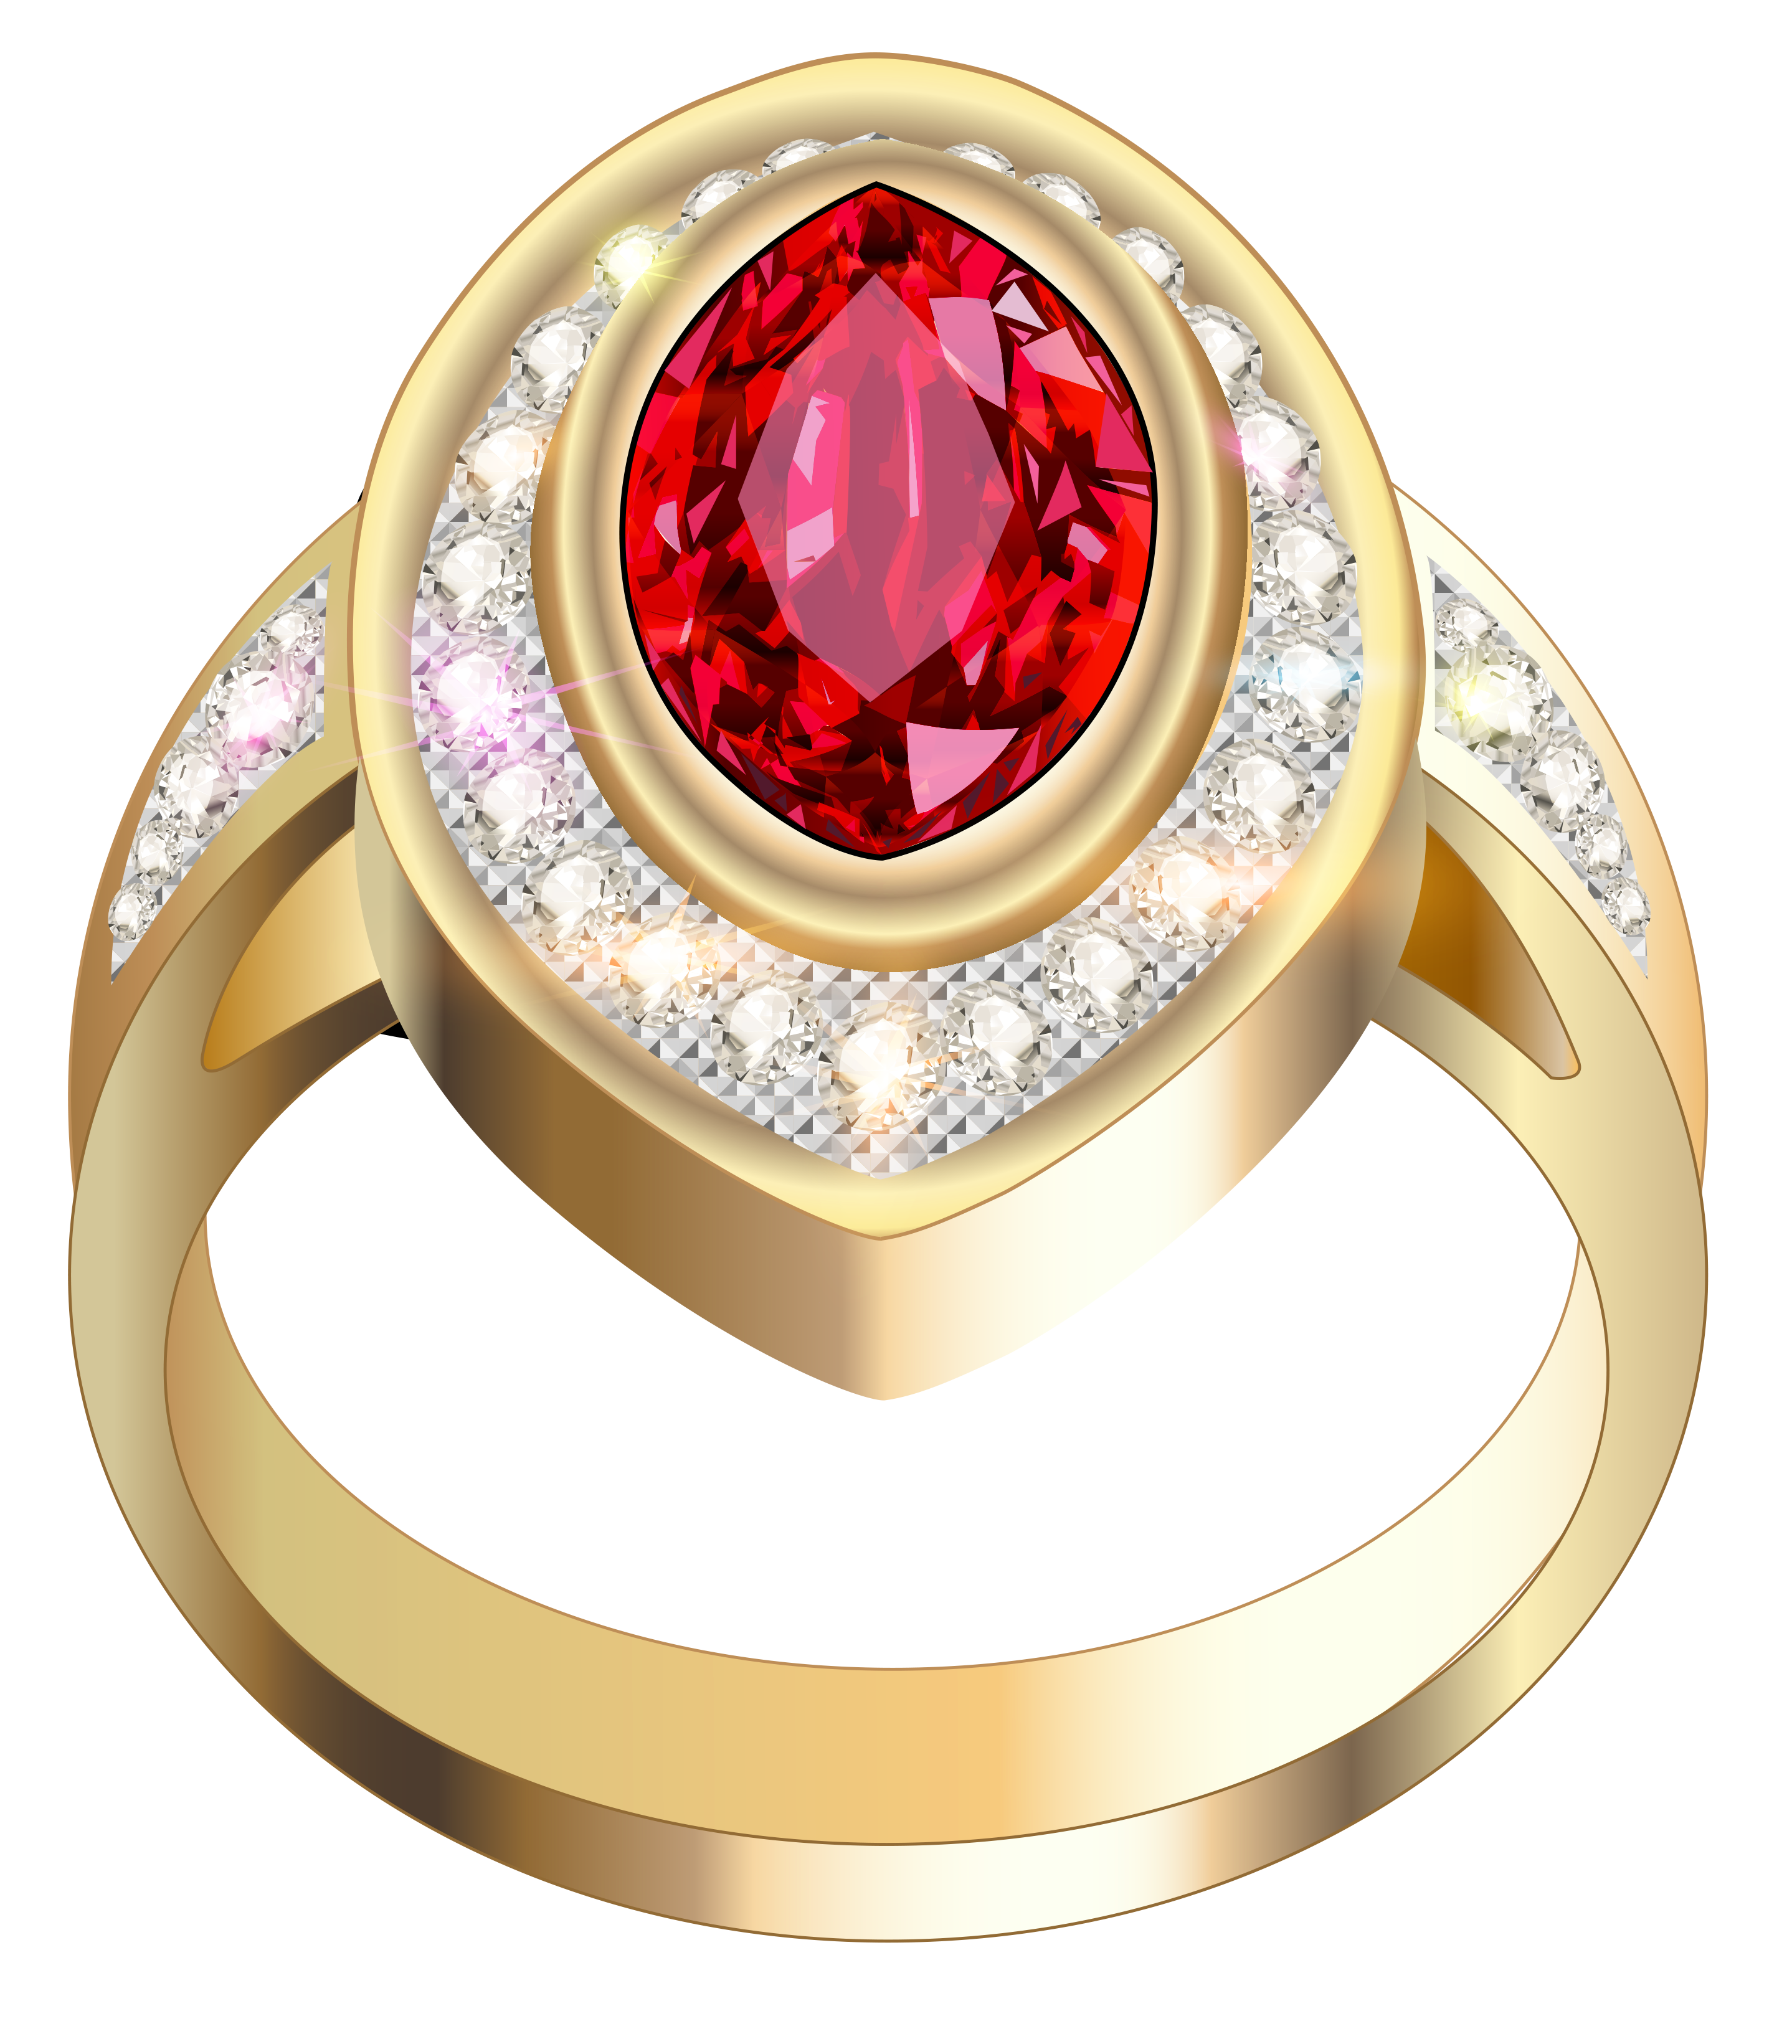 Jewelry png images free. Diamond clipart ruby